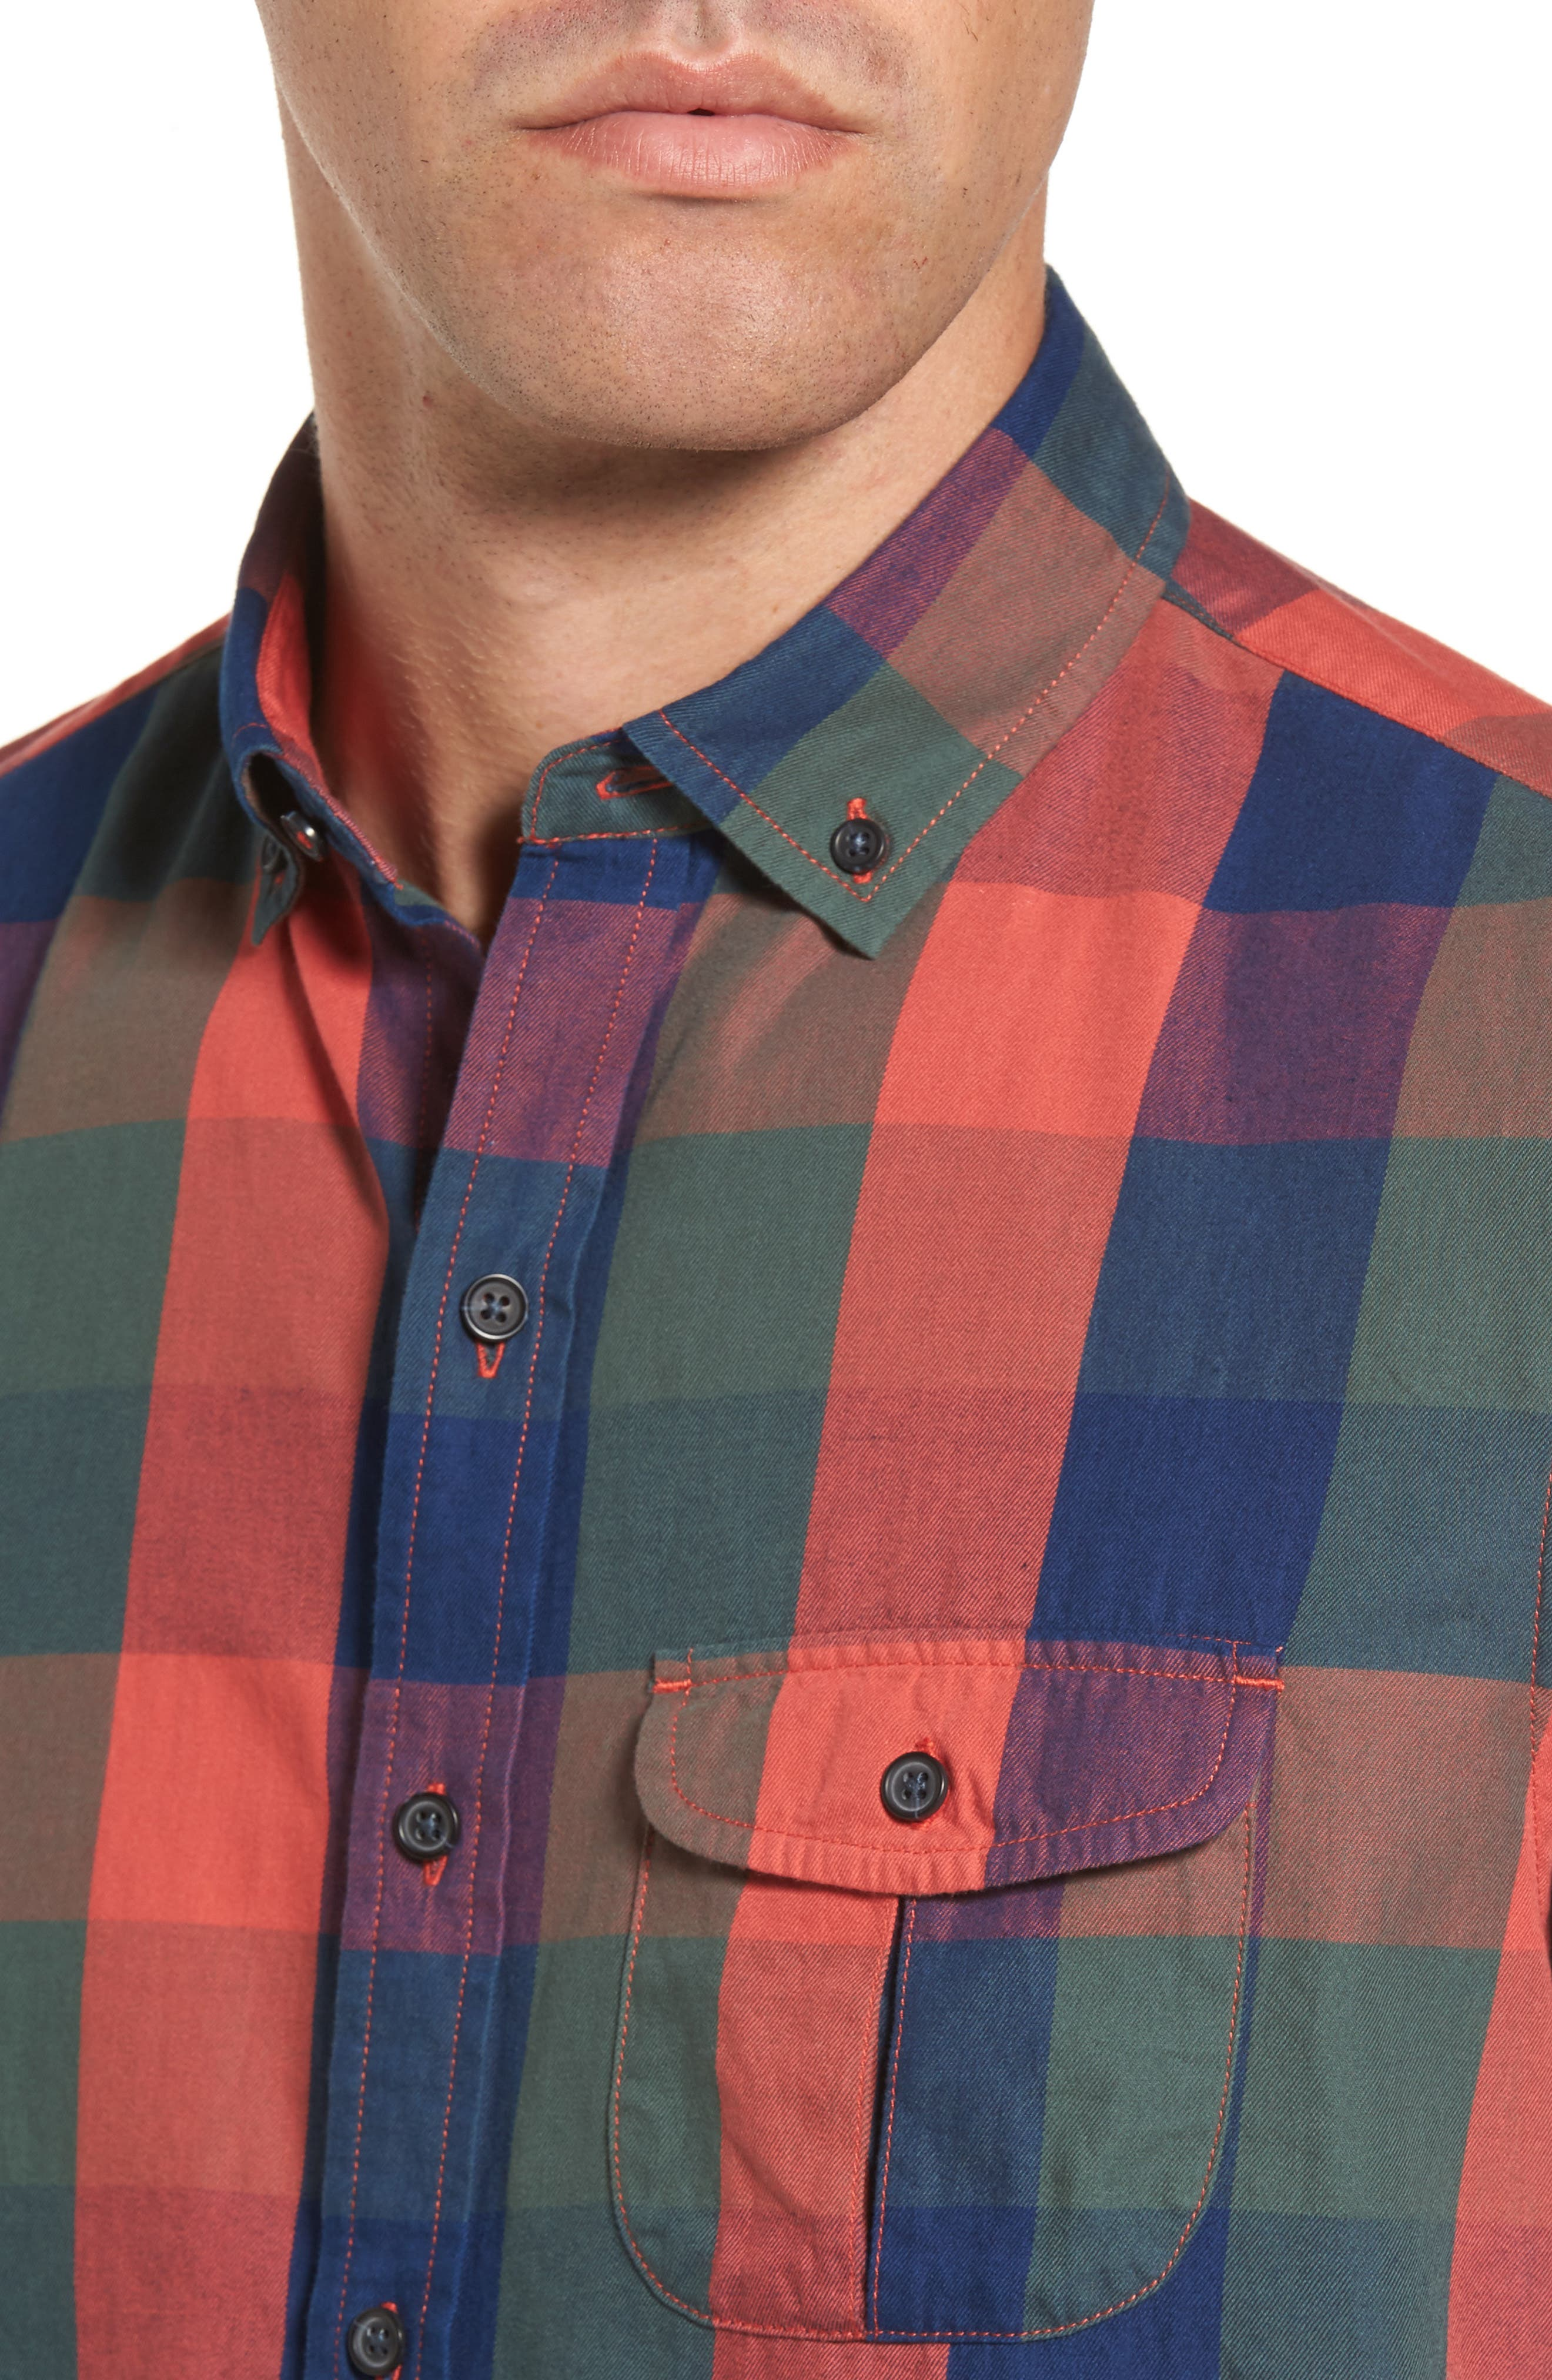 Trim Fit Plaid Sport Shirt,                             Alternate thumbnail 4, color,                             Indigo